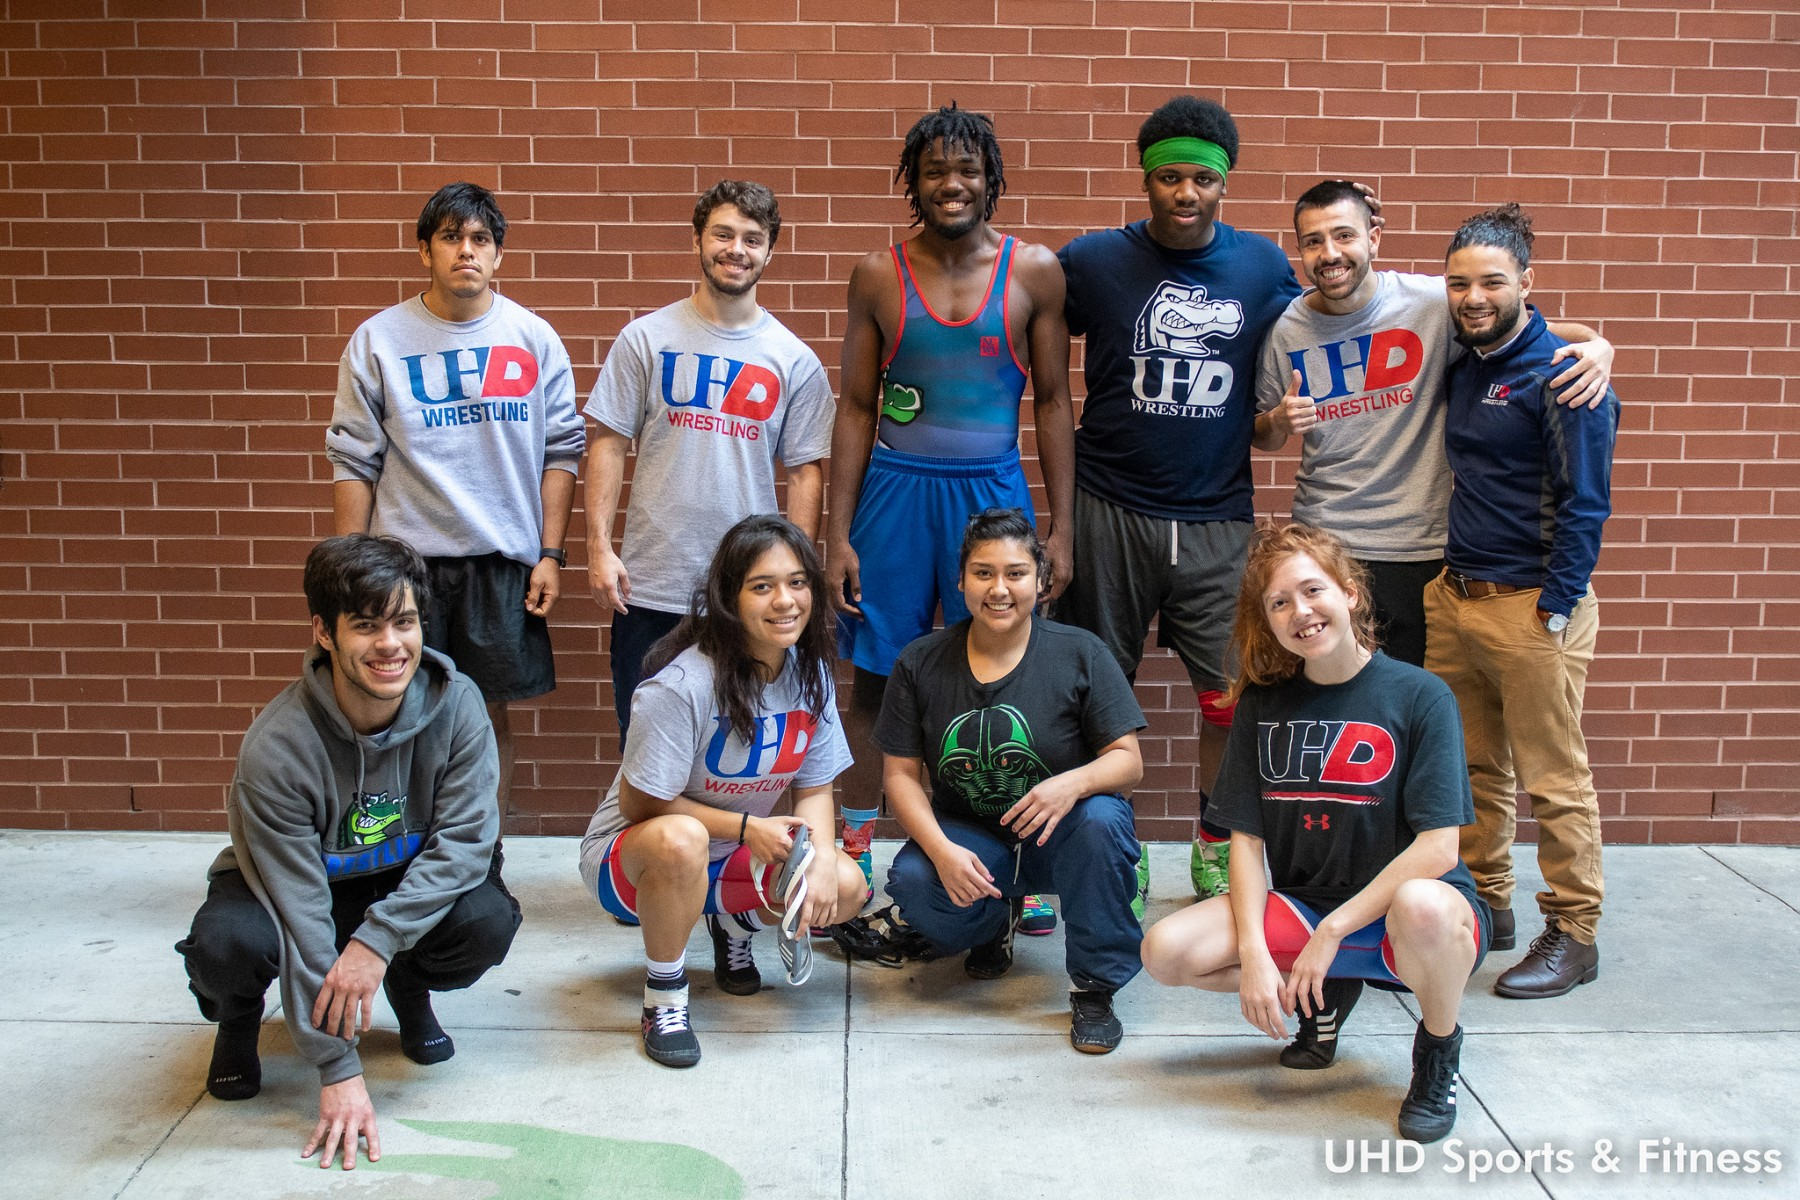 UHD Wrestling Club